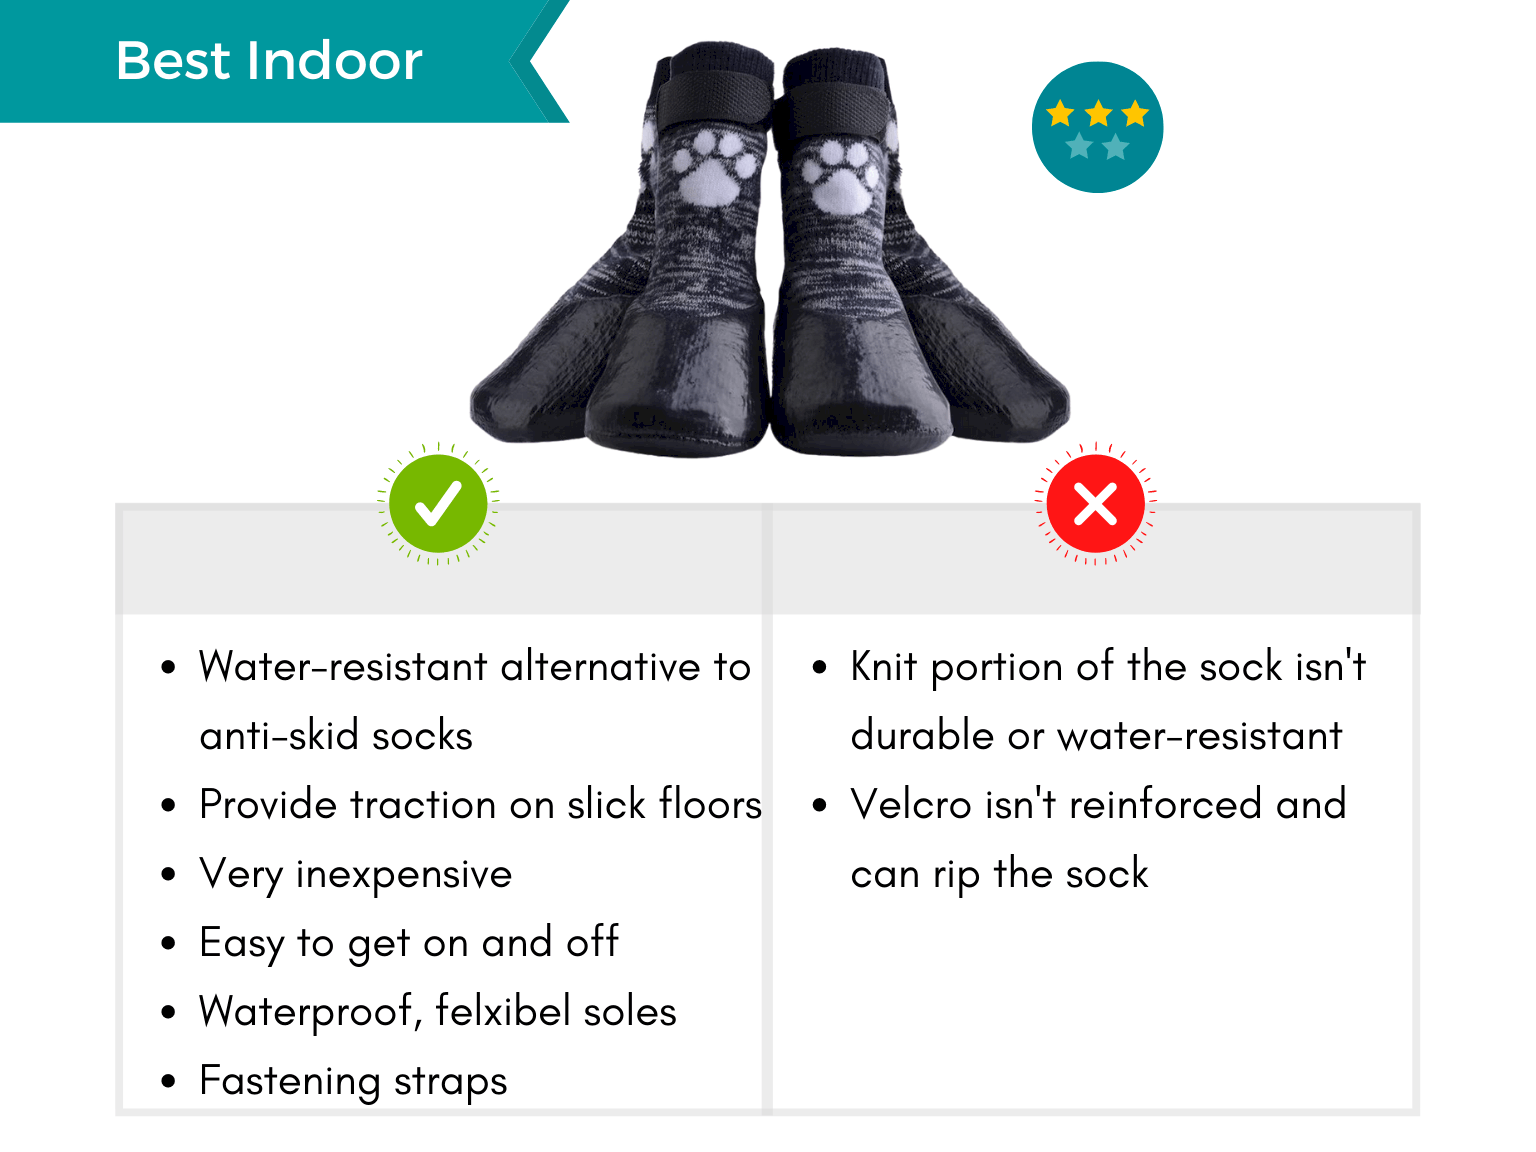 Infographic displaying pros and cons of the best waterproof dog boots for indoors.